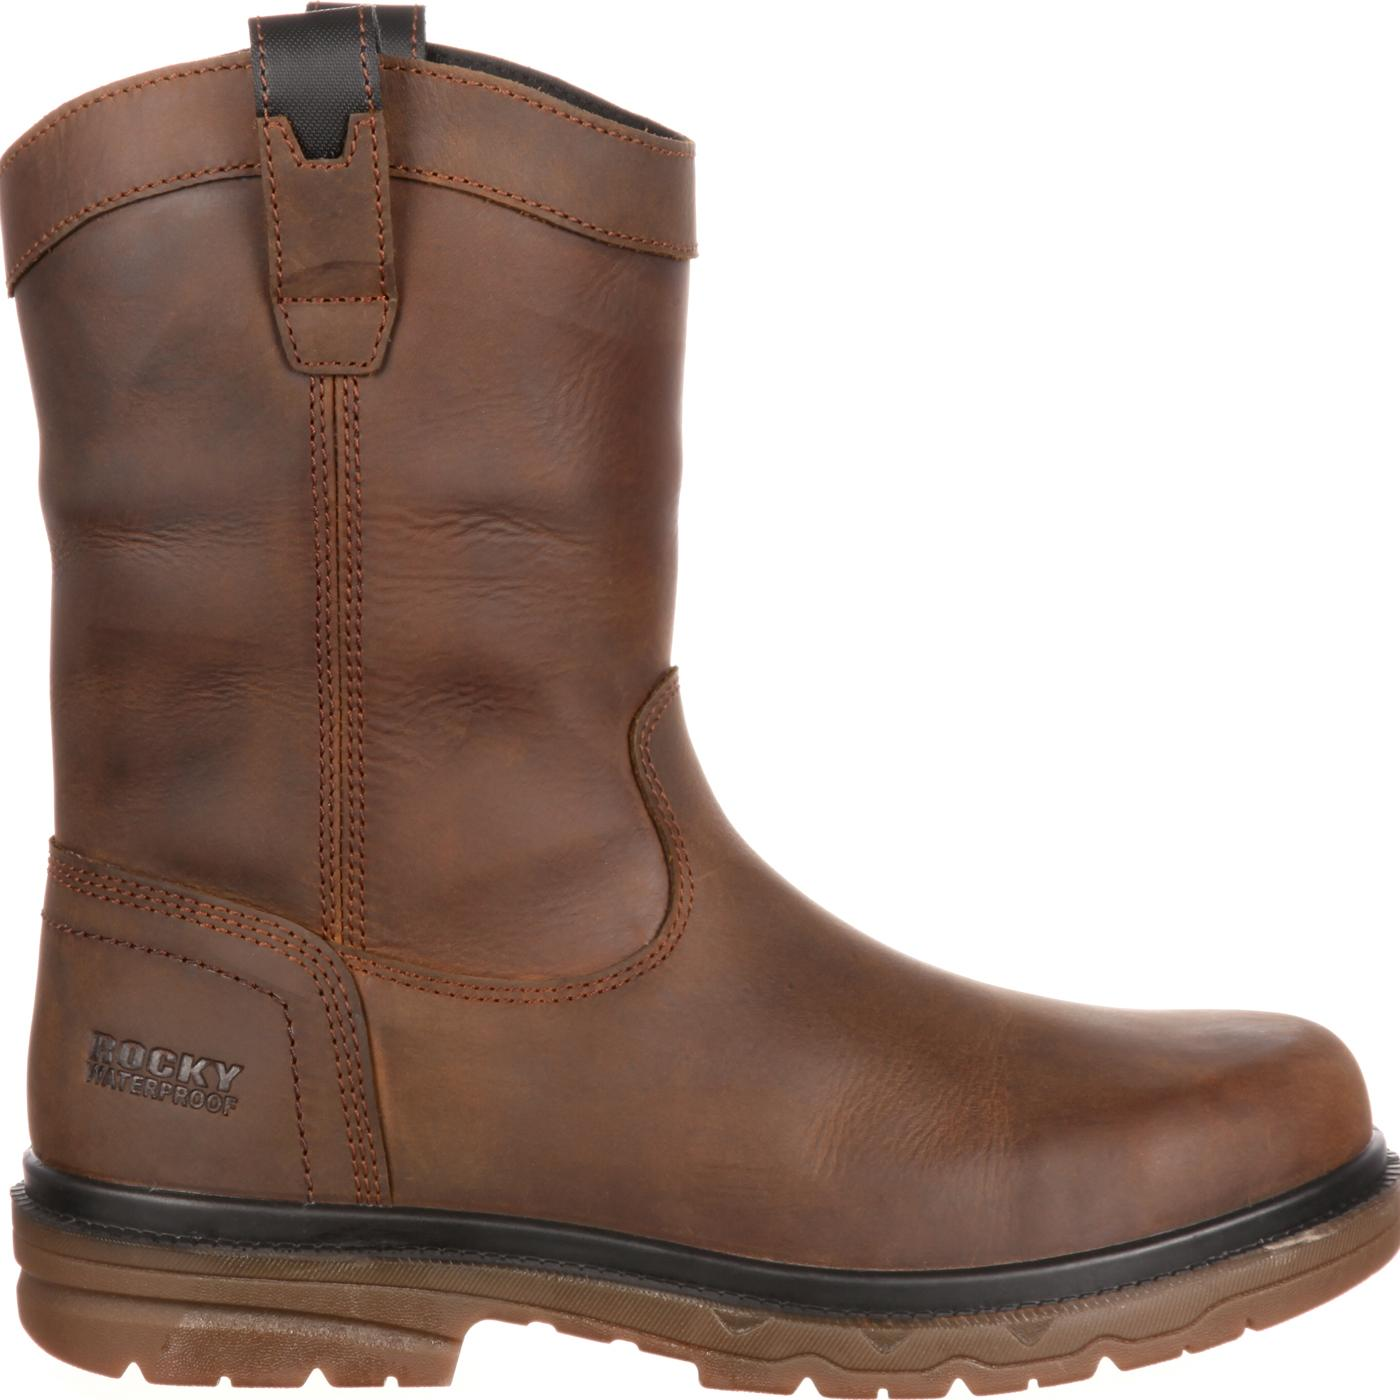 Rocky Elements Shale Safety Toe Waterproof Pull-On Work Boot